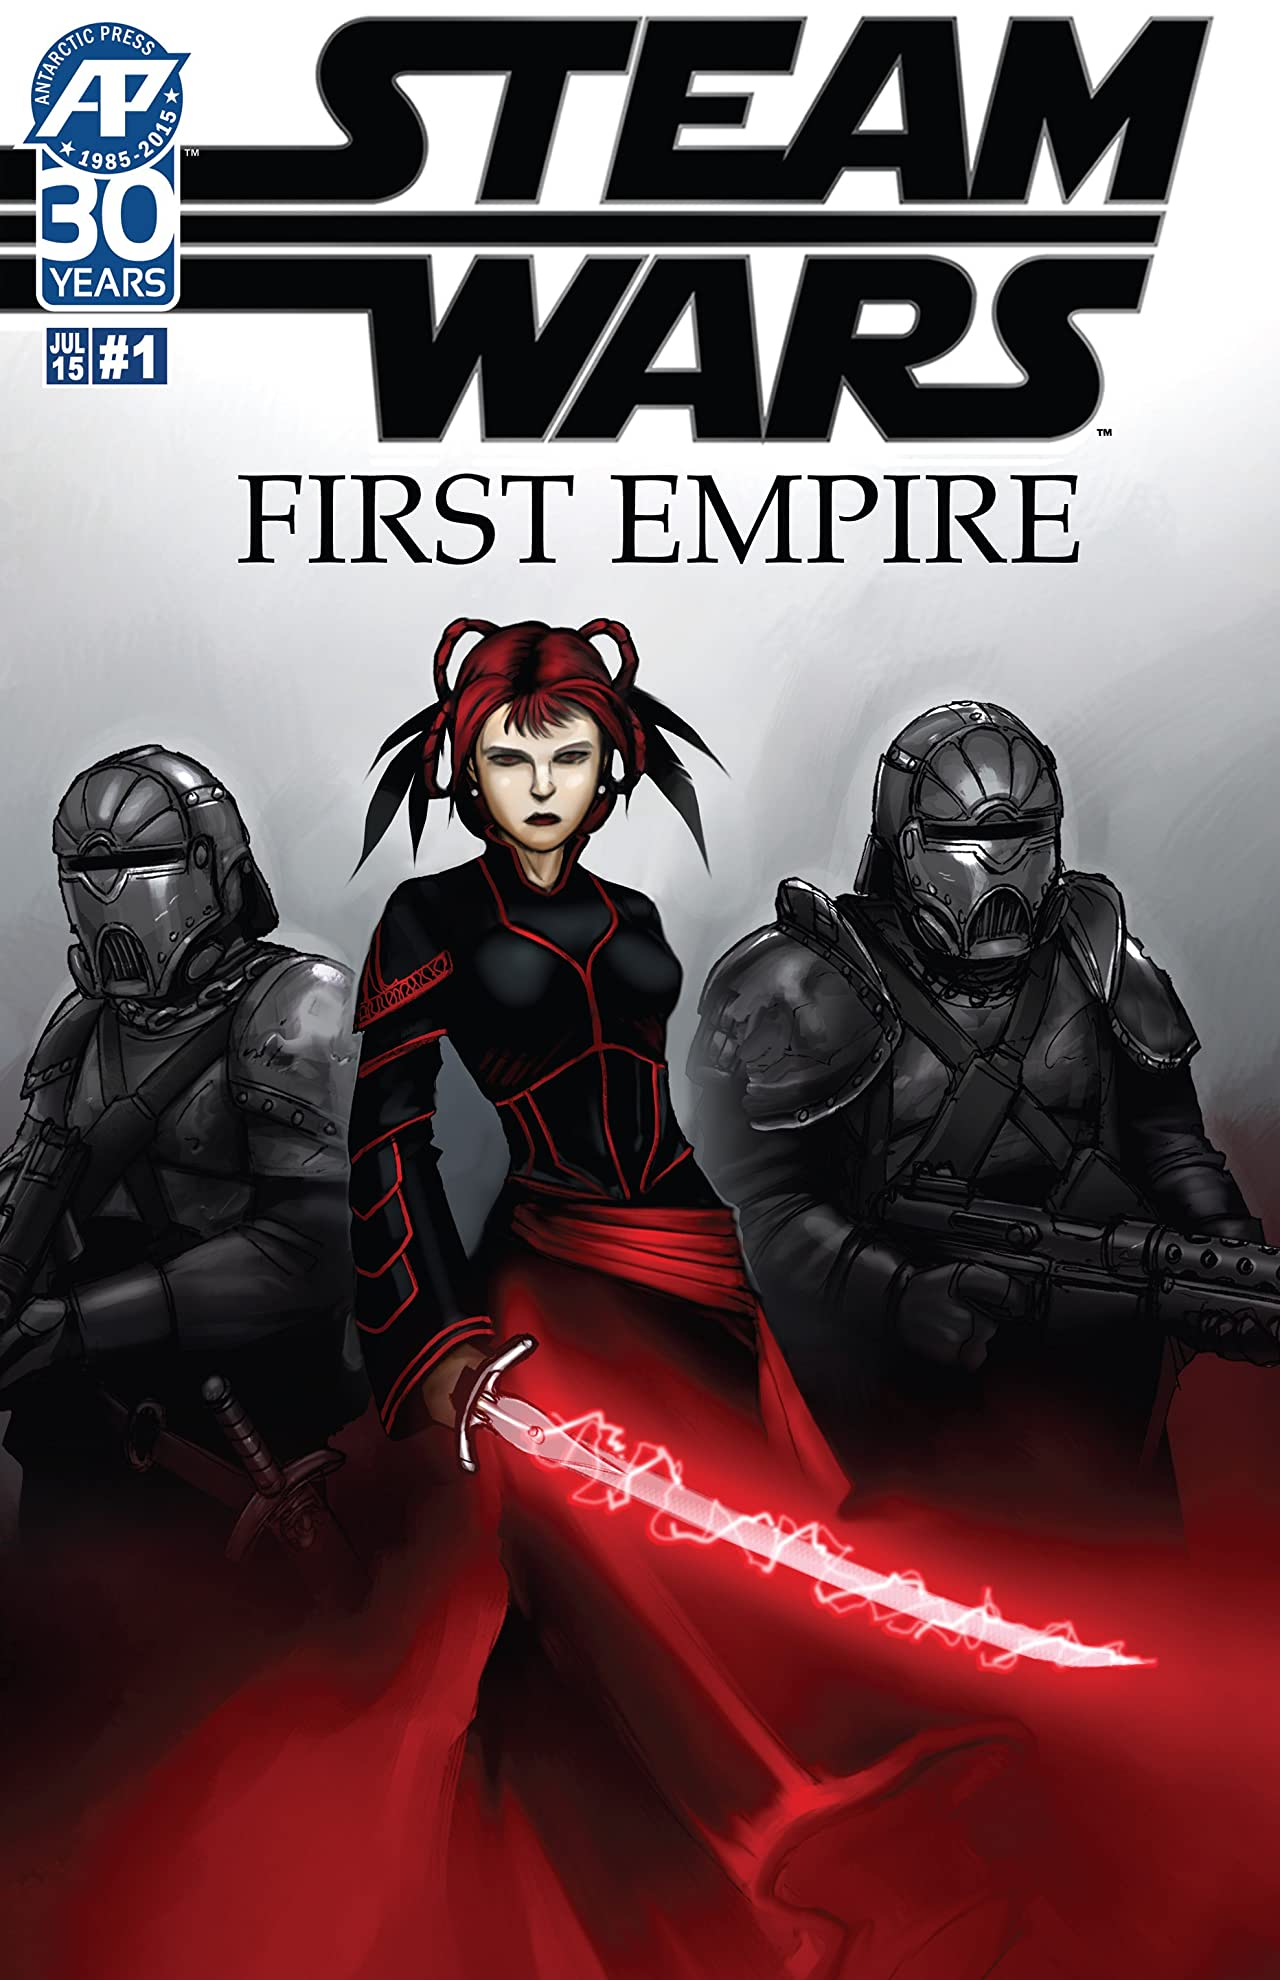 Steam Wars: First Empire #1